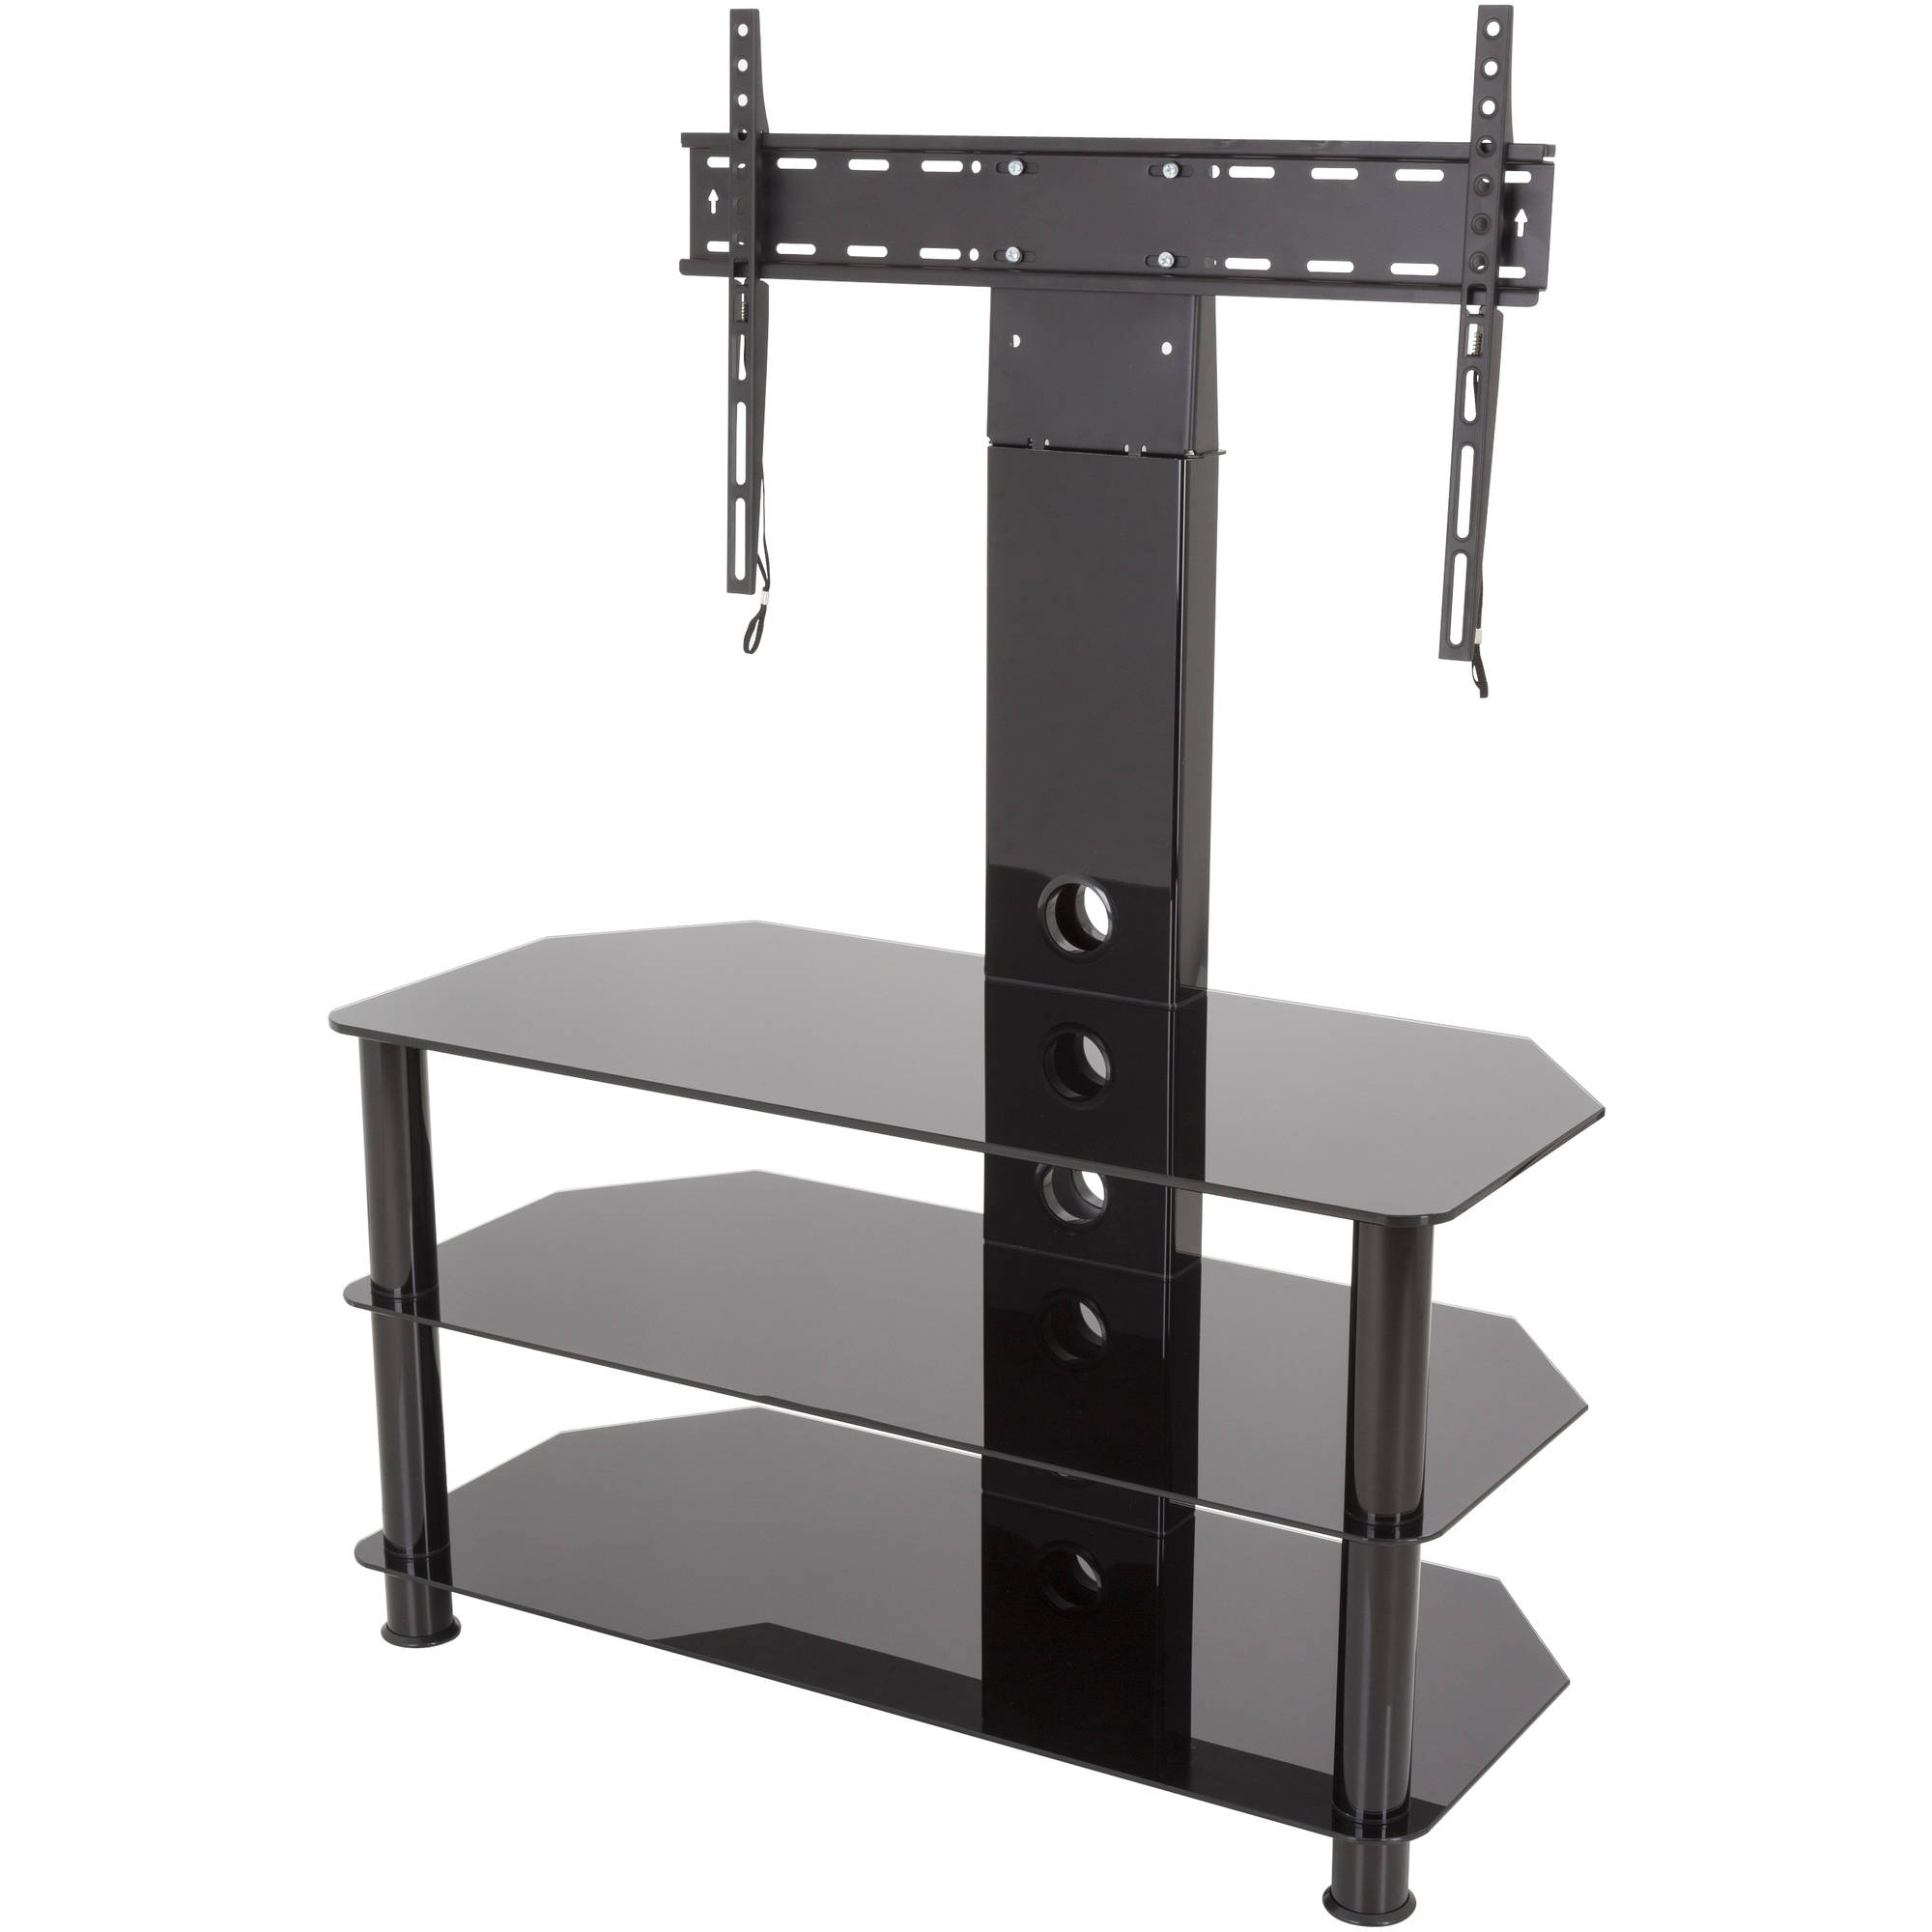 "2018 Avf Stand With Tv Mount For Tvs Up To 65"", Black Glass, Black Legs For Swivel Black Glass Tv Stands (View 2 of 20)"